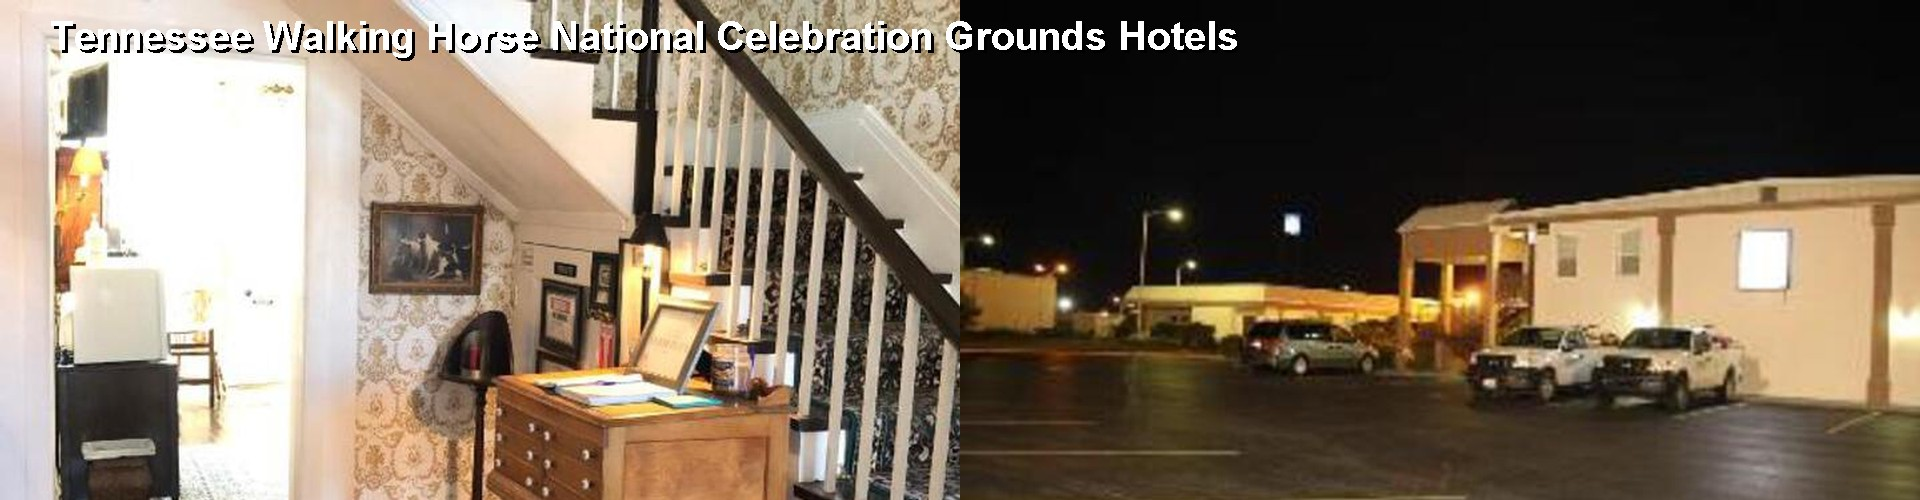 5 Best Hotels near Tennessee Walking Horse National Celebration Grounds